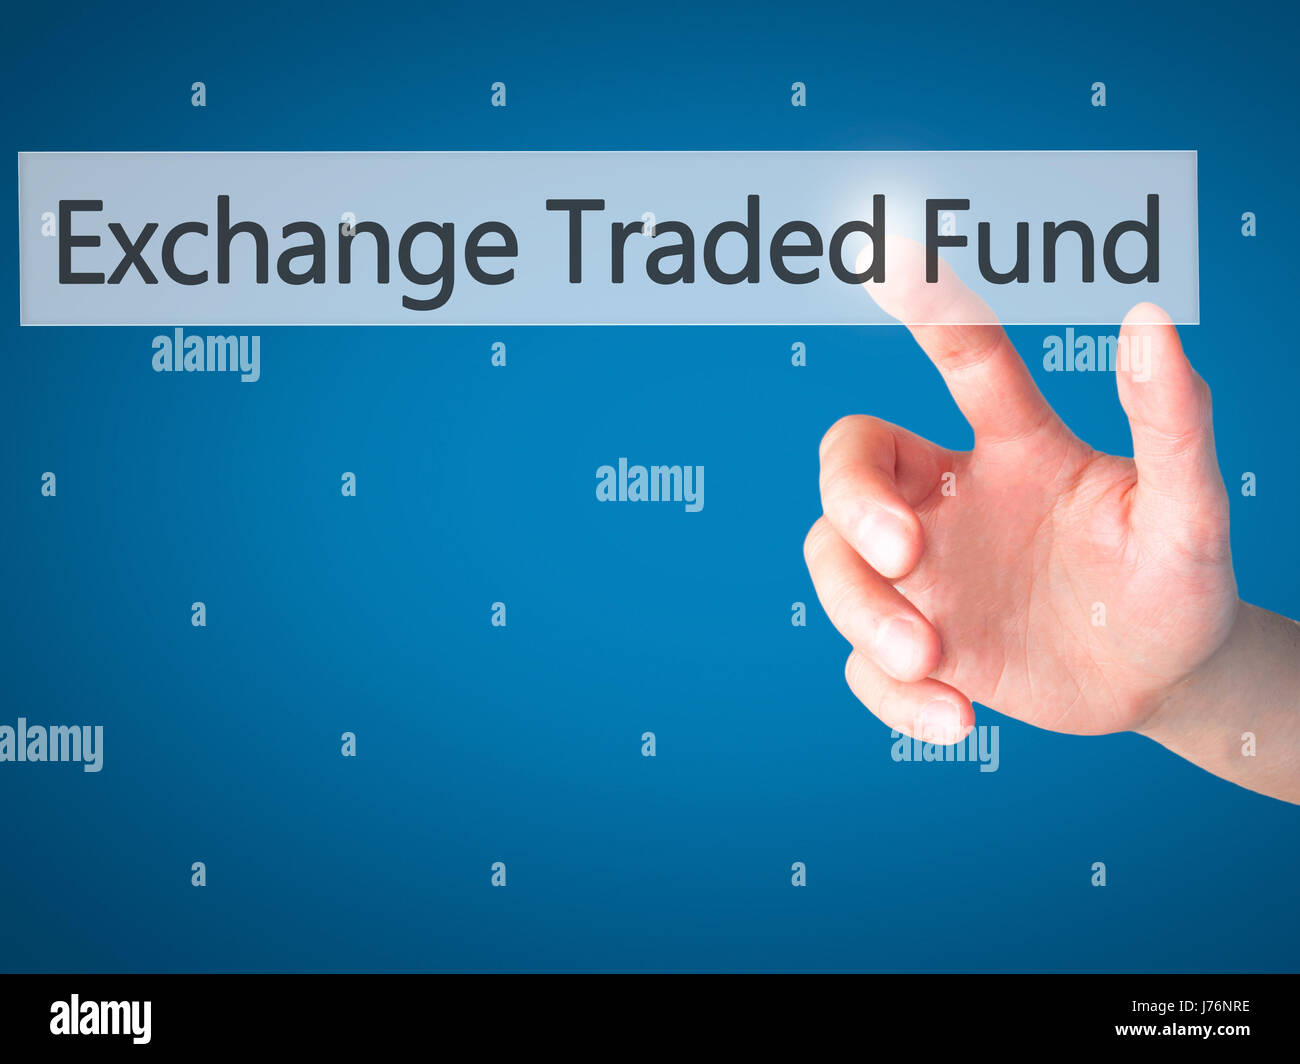 Exchange Traded Fund - Hand pressing a button on blurred background concept . Business, technology, internet concept. Stock Photo